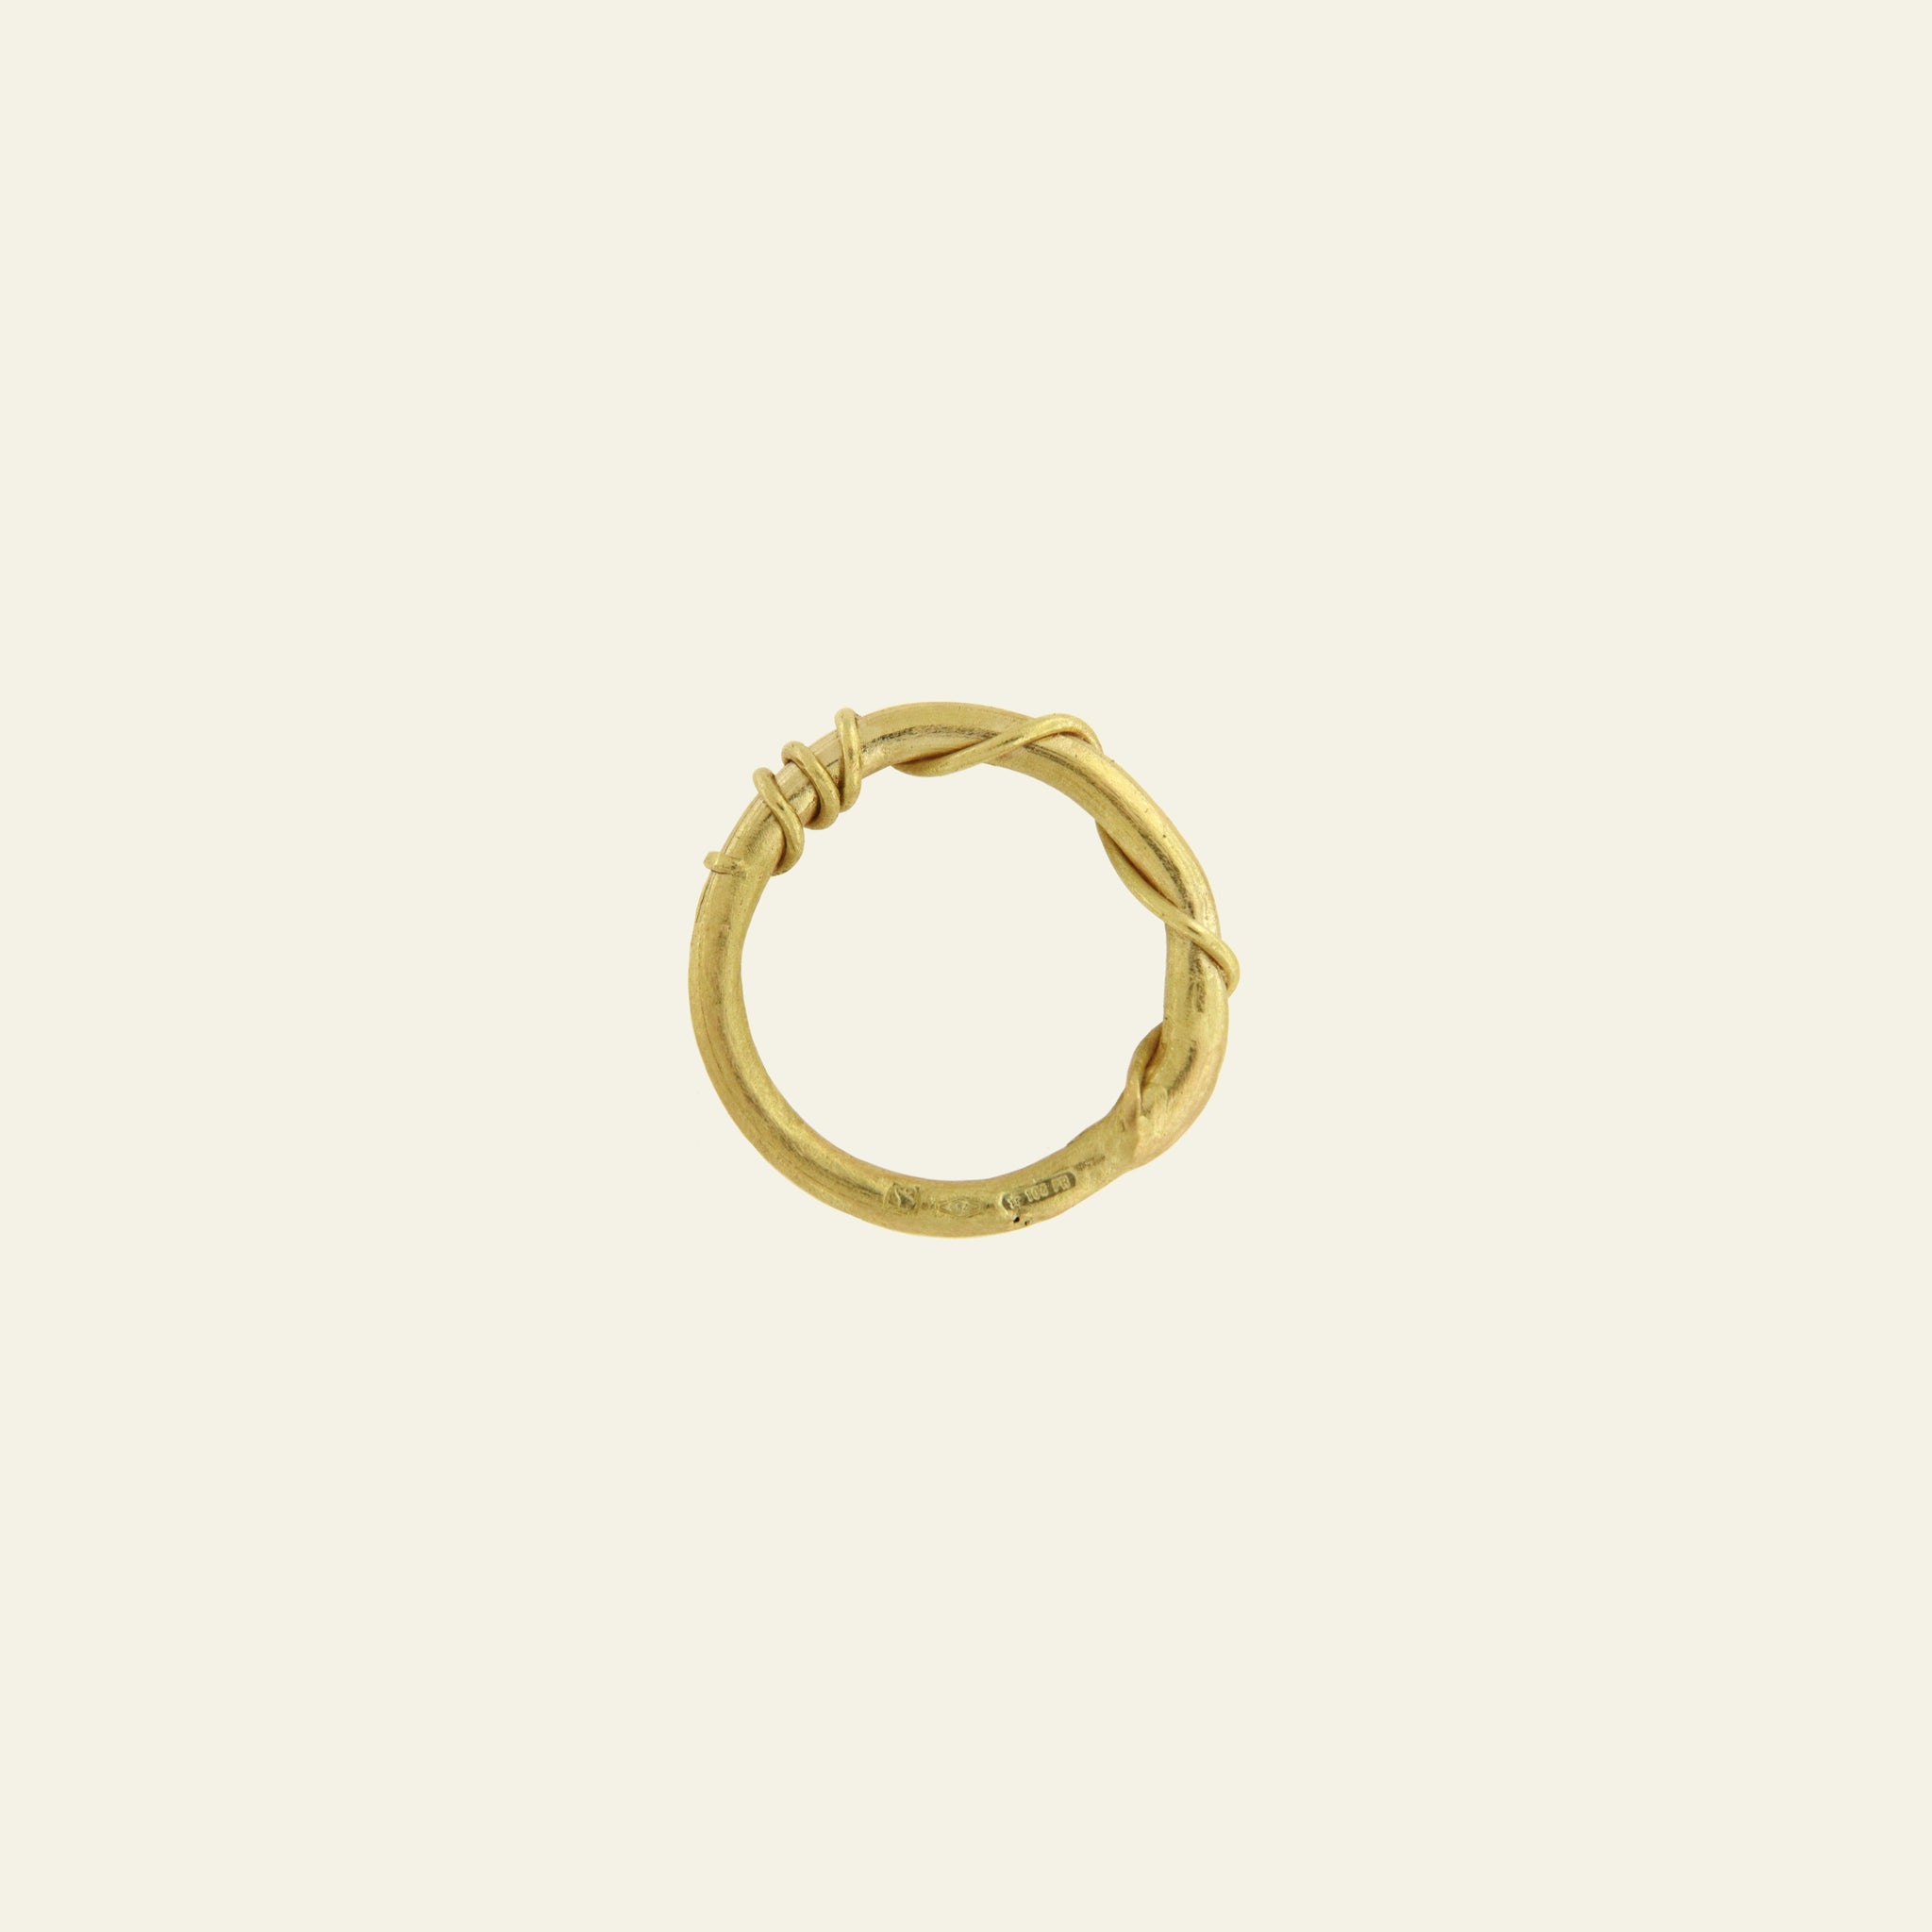 Anello Vite <br /> Oro Fairtrade 18k <br />